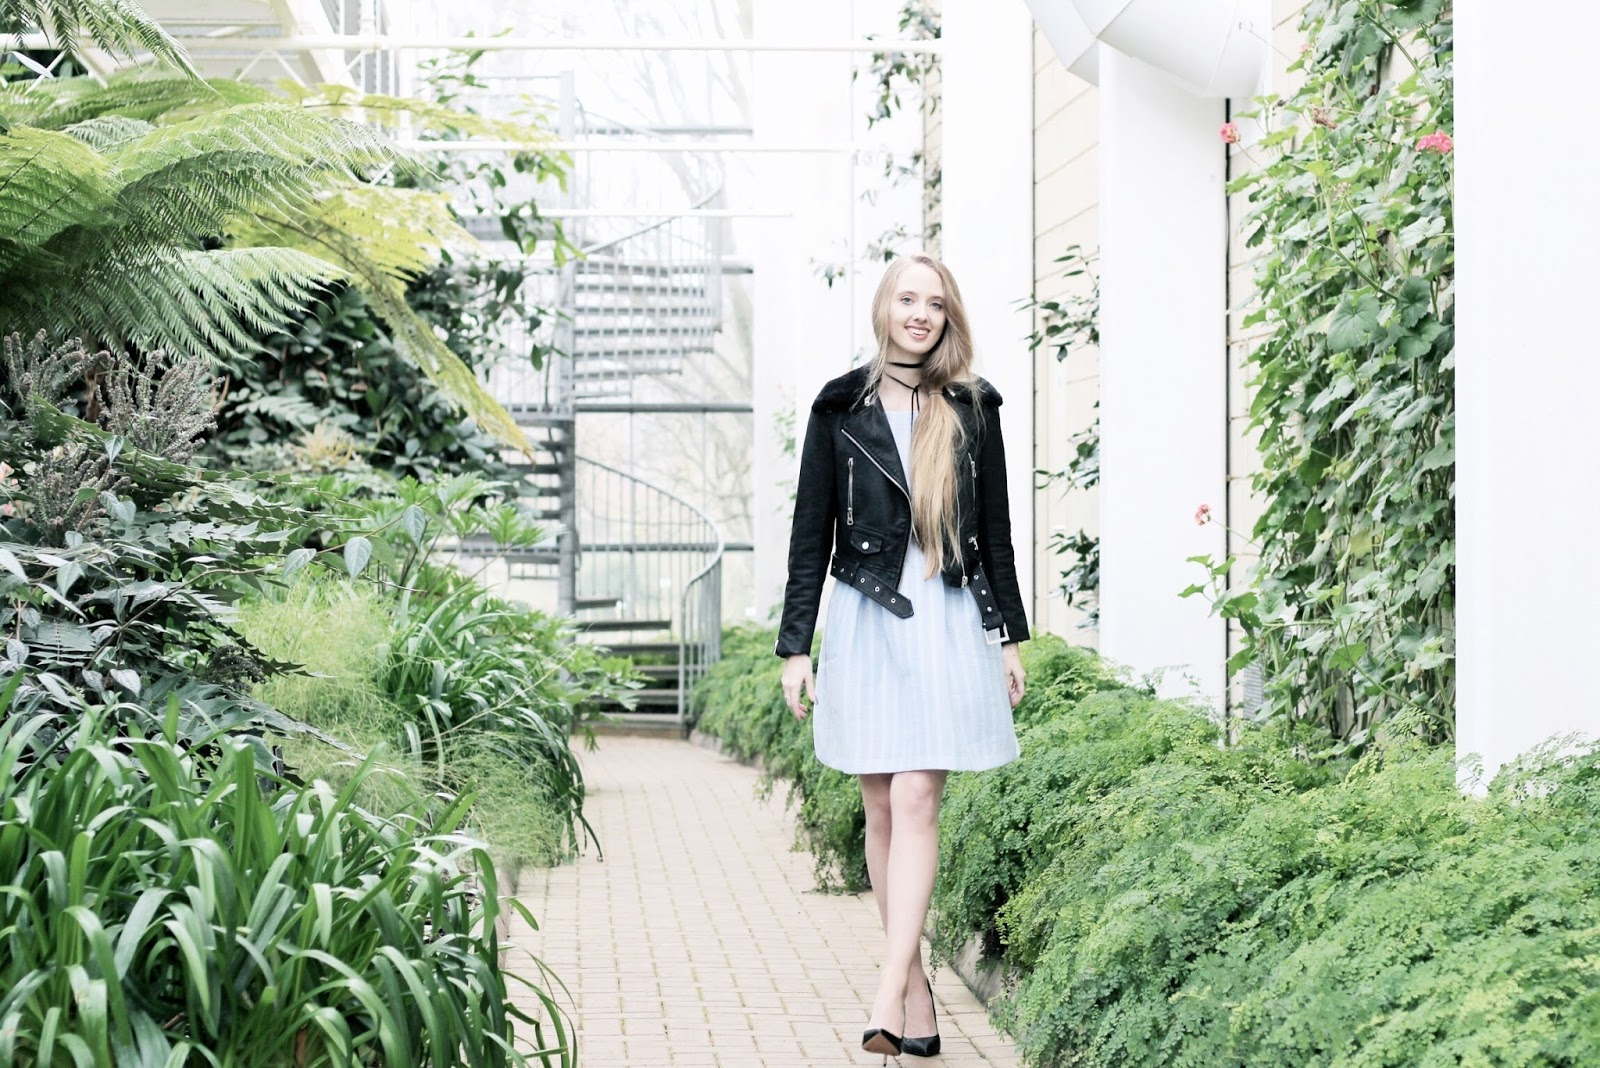 Fashion blog styling spring clothing in winter